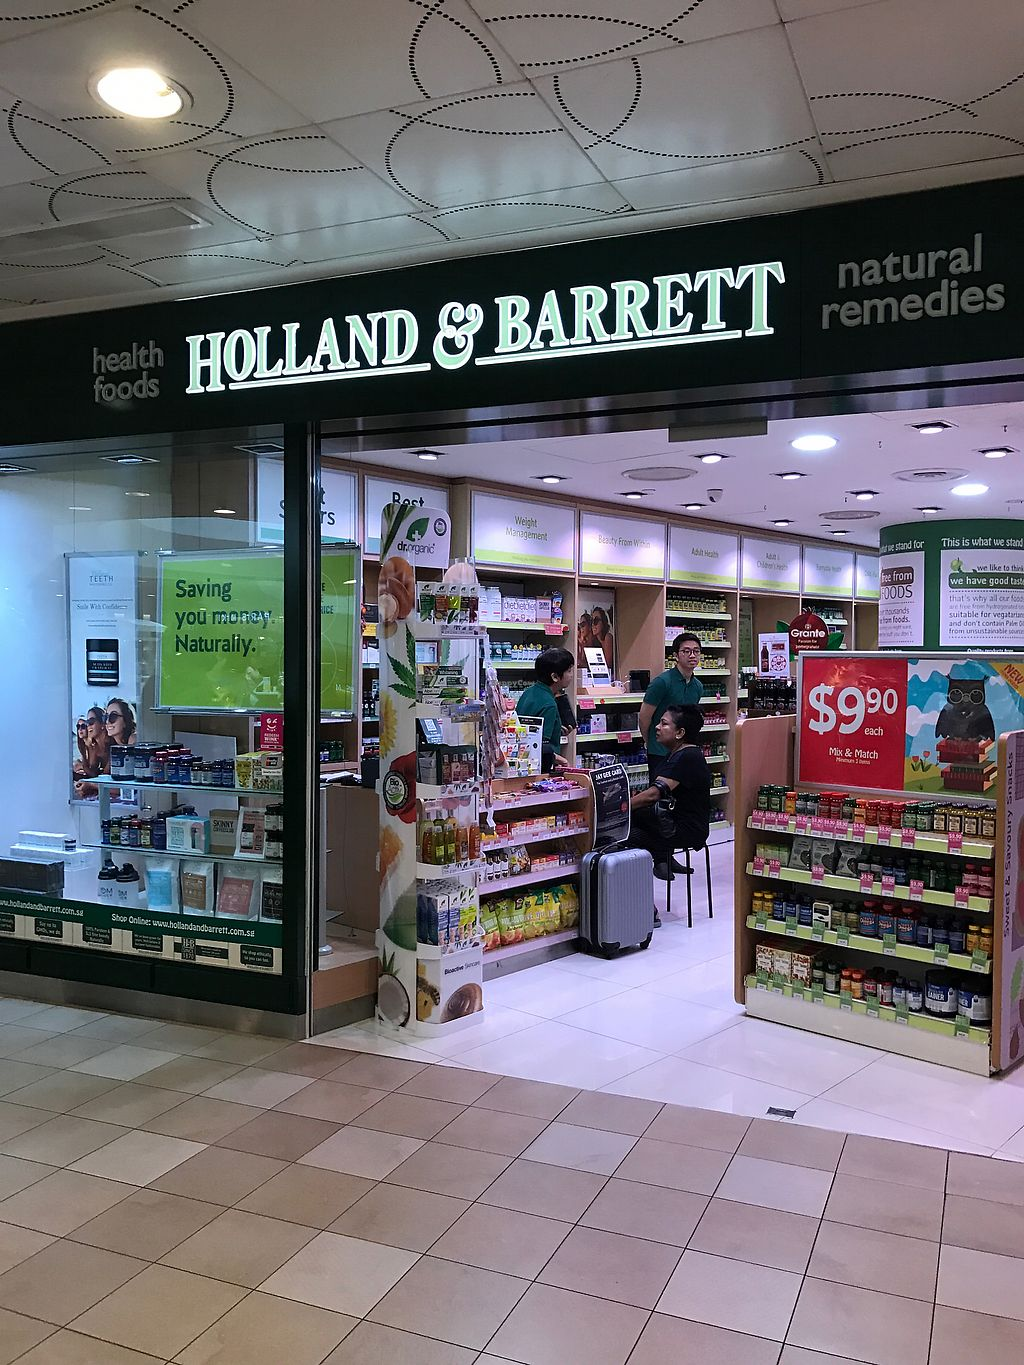 """Photo of Holland & Barrett - Tampines  by <a href=""""/members/profile/kkylaye"""">kkylaye</a> <br/>store front <br/> March 12, 2018  - <a href='/contact/abuse/image/113966/369555'>Report</a>"""